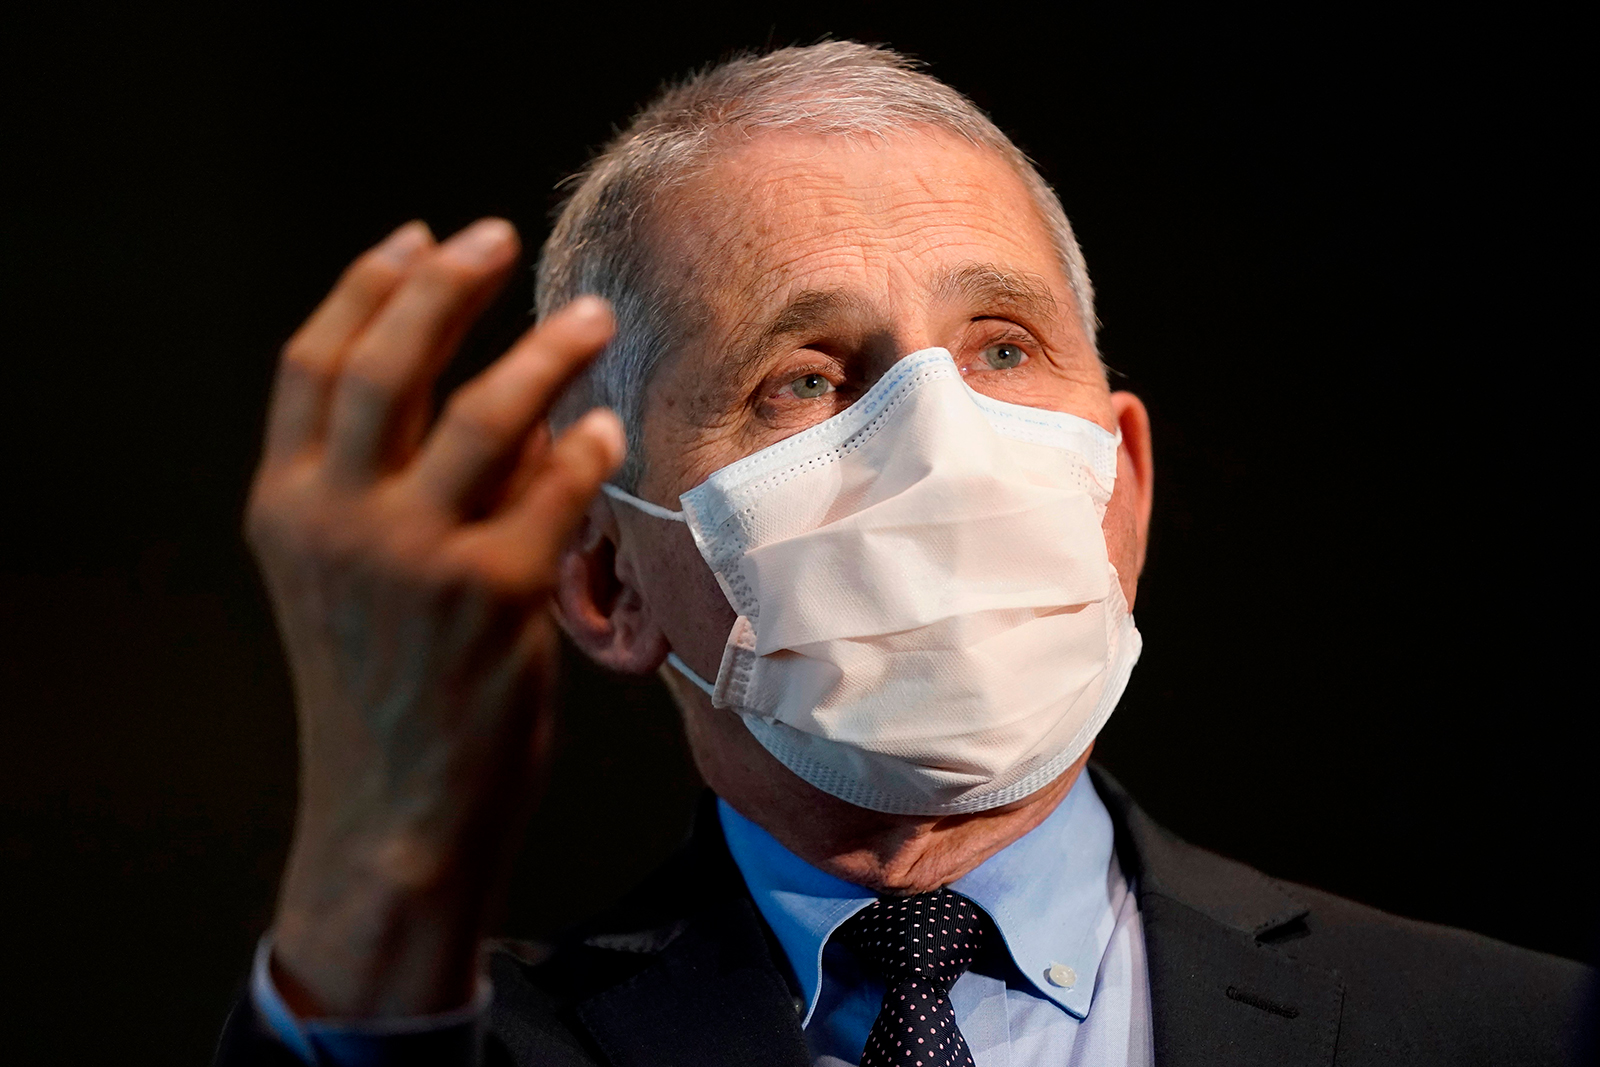 Anthony Fauci seen at the National Institutes of Health on December 22, 2020, in Bethesda, Maryland.